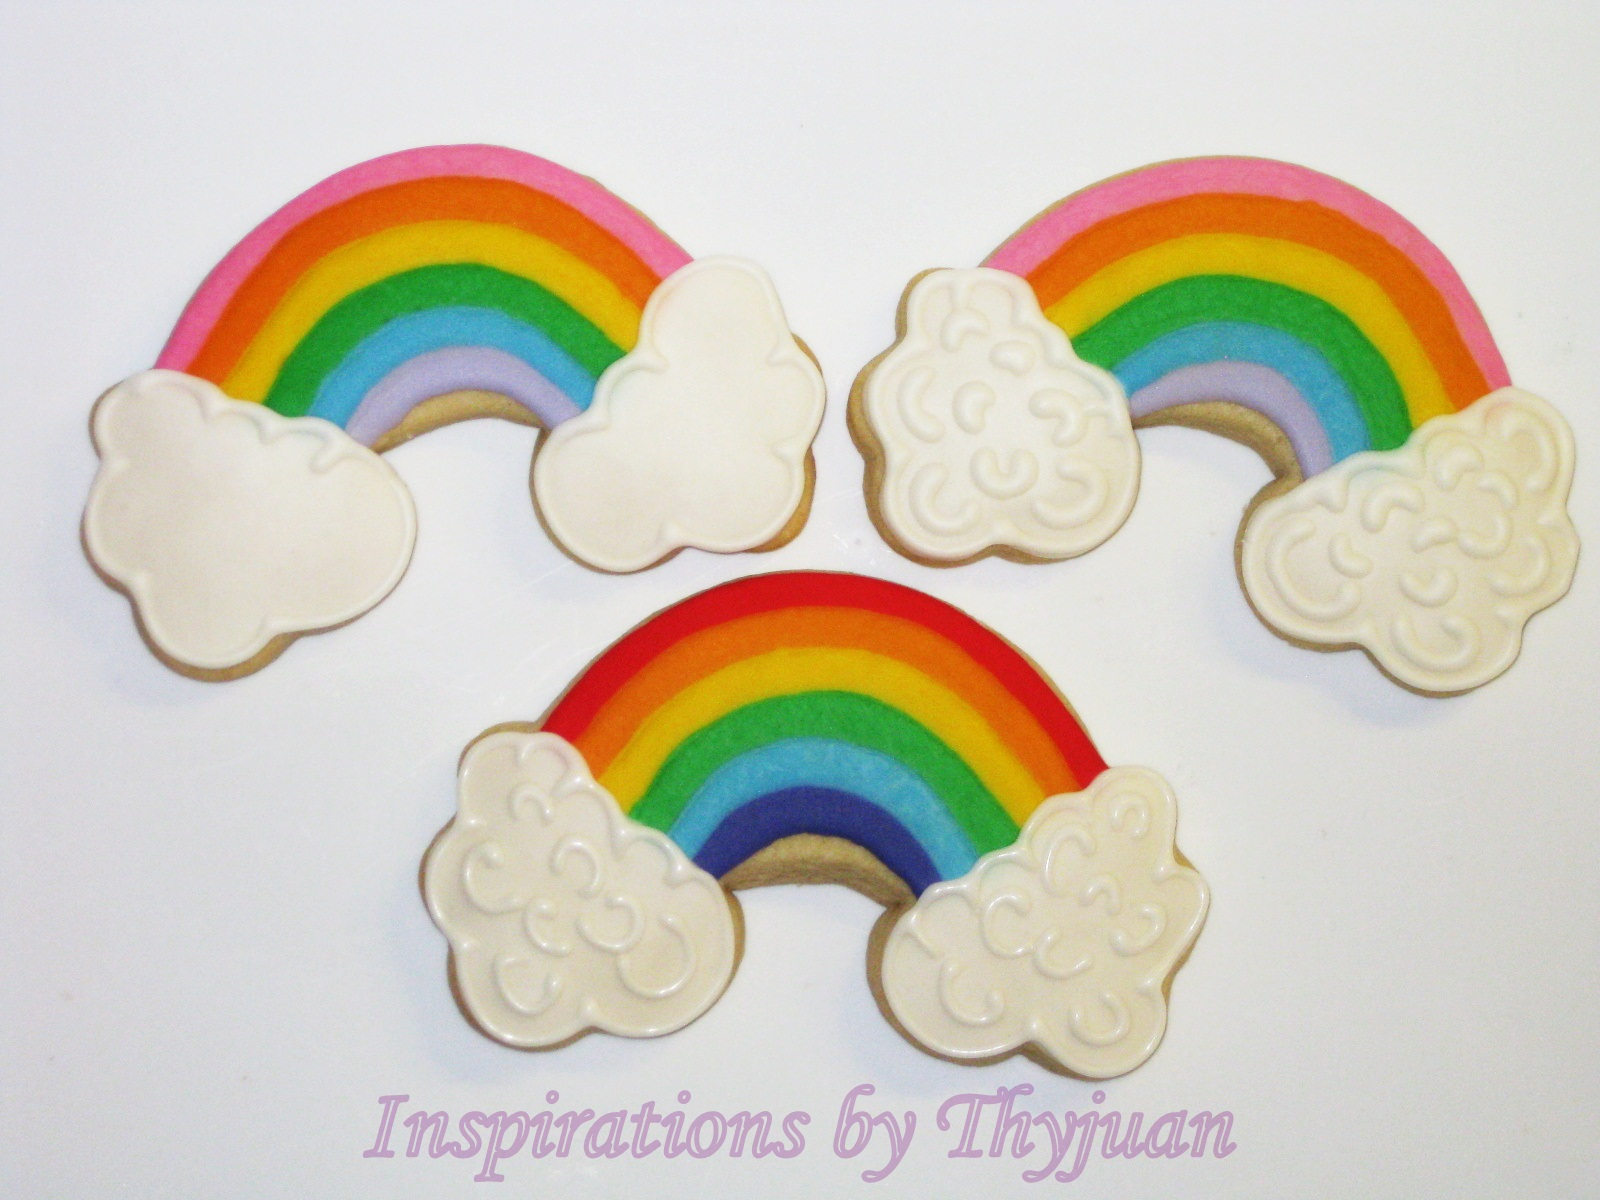 made some rainbow cookies the top 2 designs are now featured on http ...